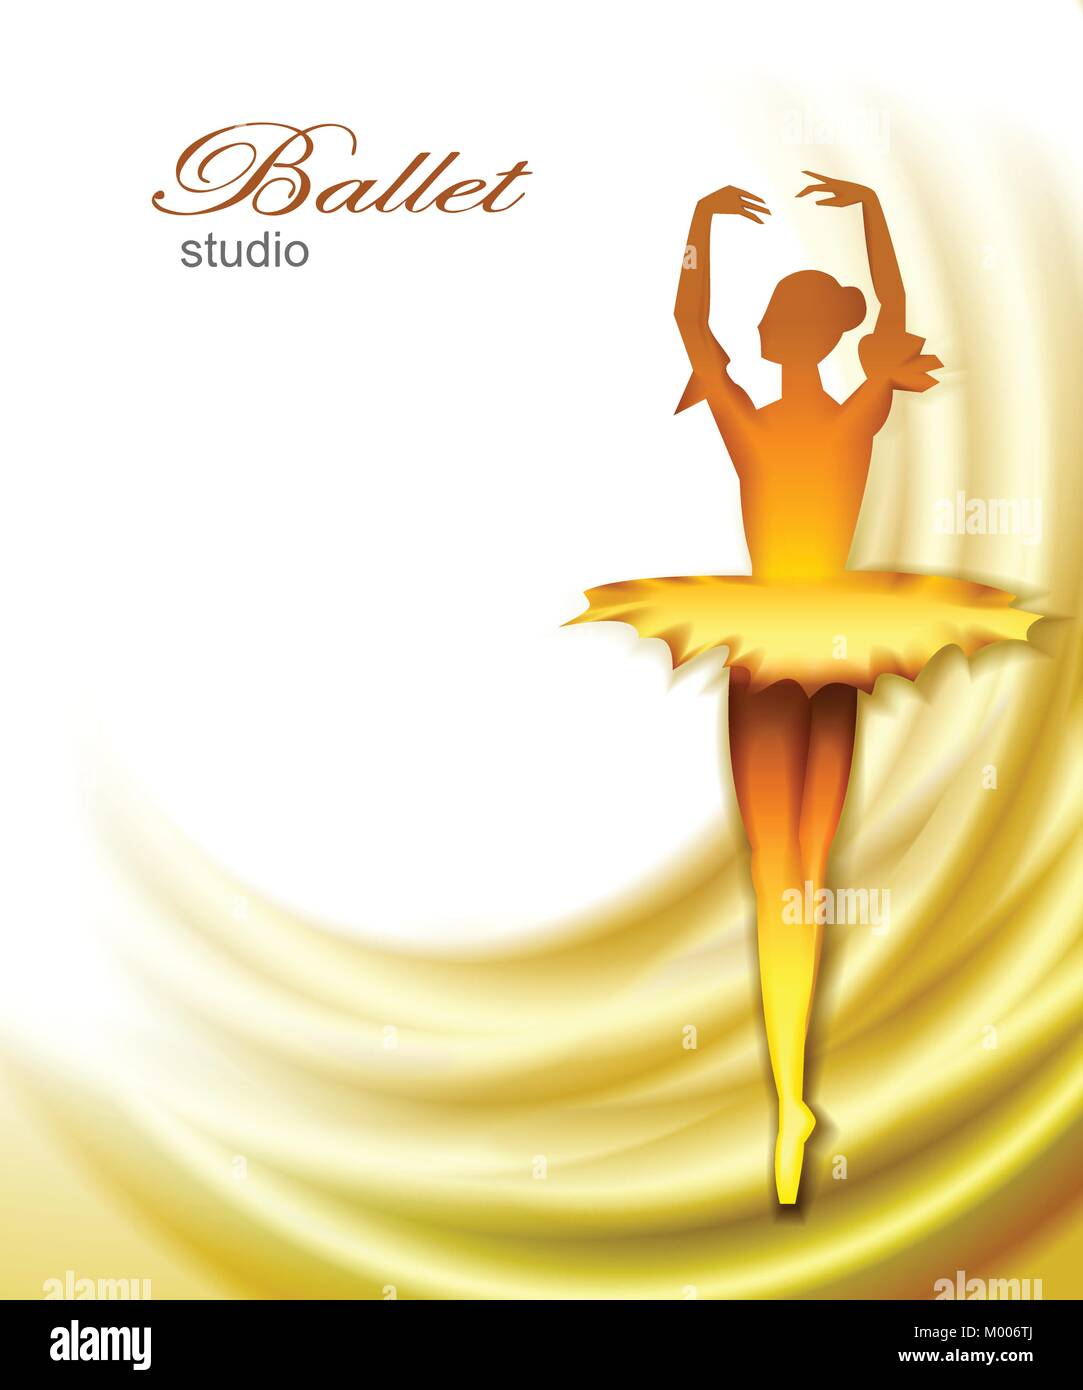 Ballet dancer background - Stock Vector